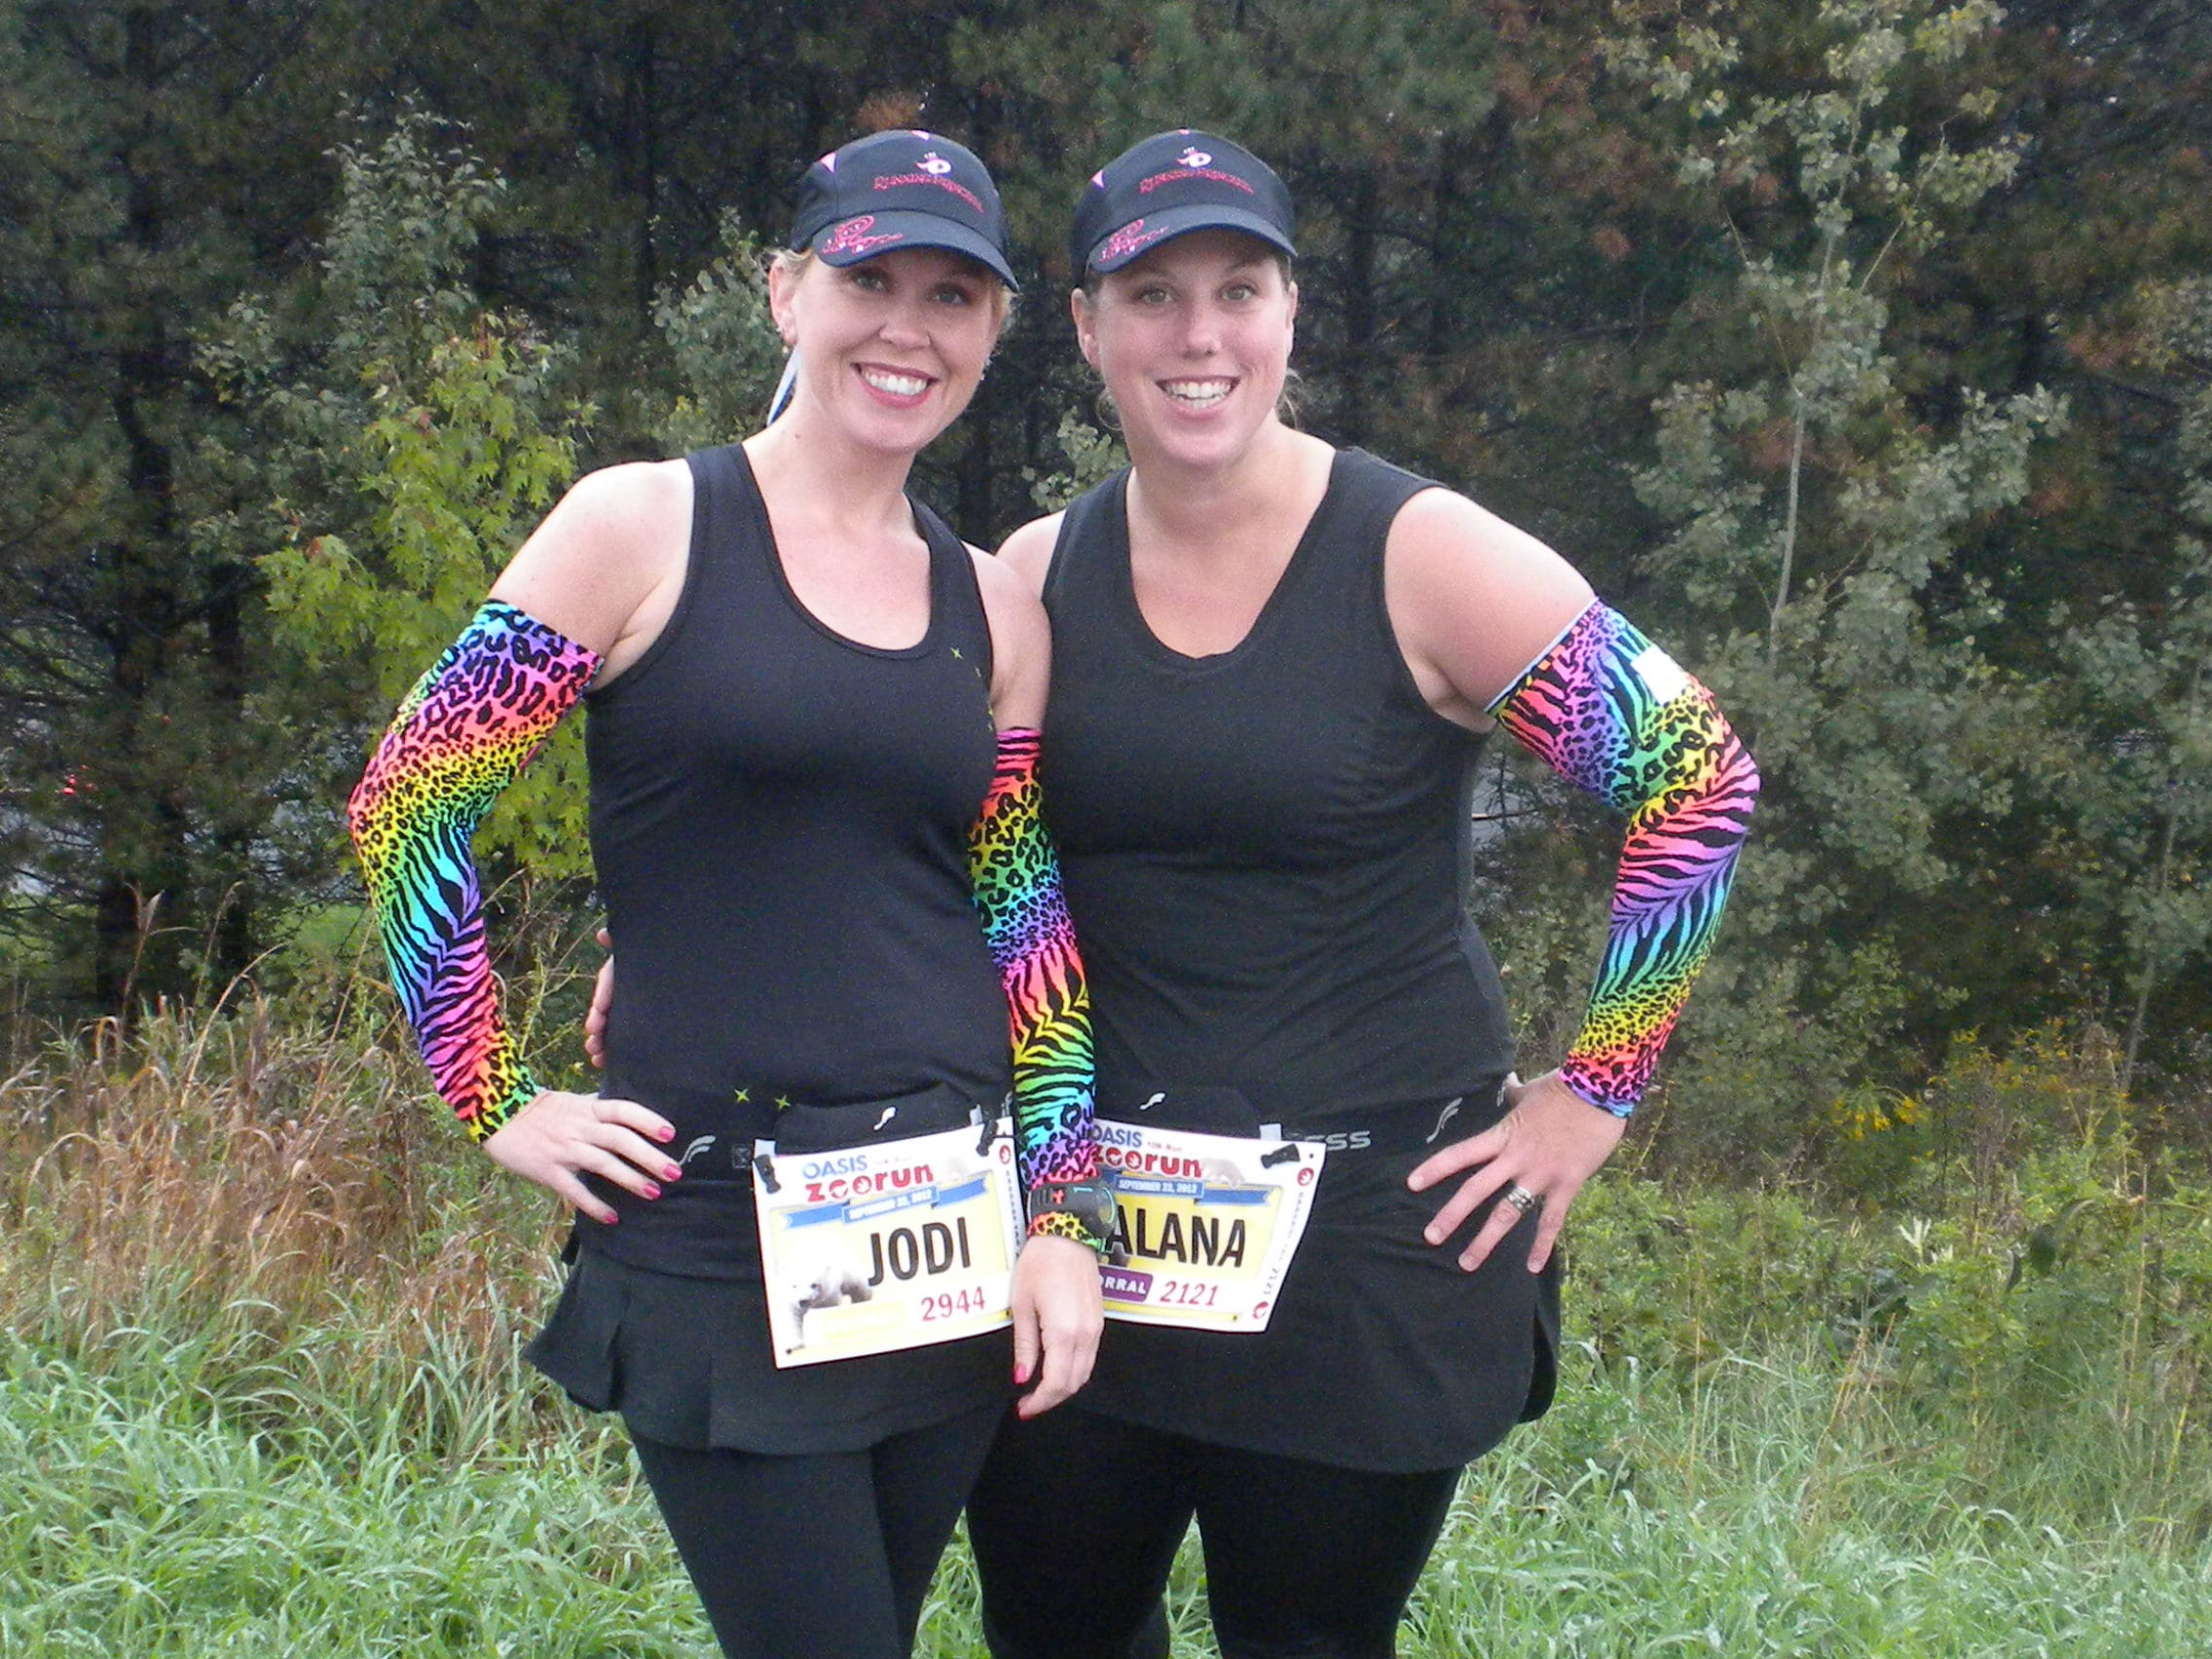 Become a runner, and you too can wear coordinated, adorable outfits with your BRFs.